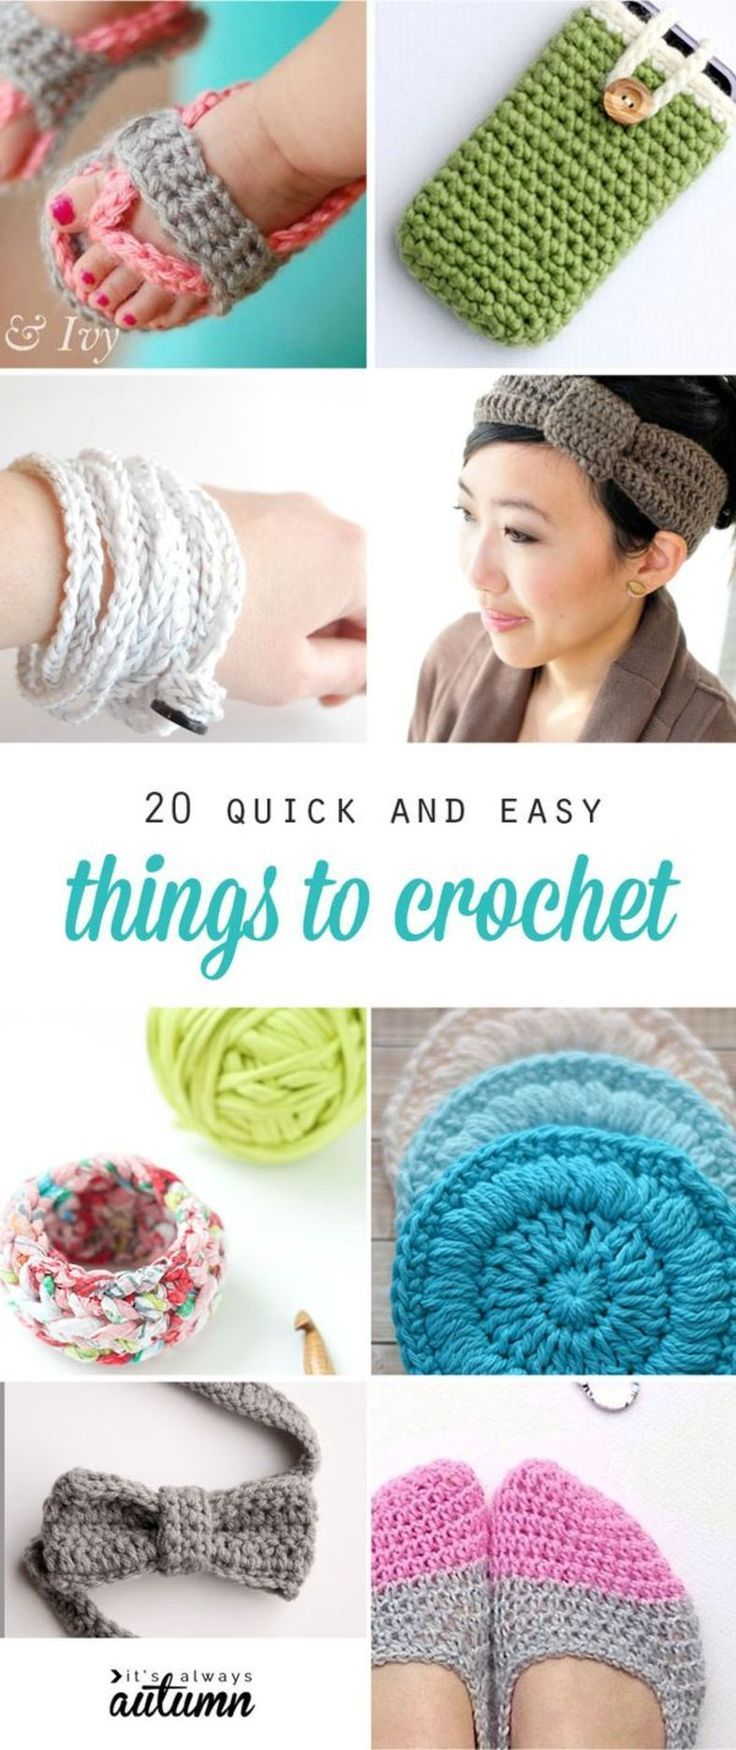 crochet projects for beginners 50+ free easy crochet patterns and help for beginners this is your ultimate guide to learn how to crochet for beginners by: caley walsh, editor, favecraftscom  if you want to add an adorable embellishment to your completed beginner crochet projects, this is the section for you learn how to crochet flowers and bows.